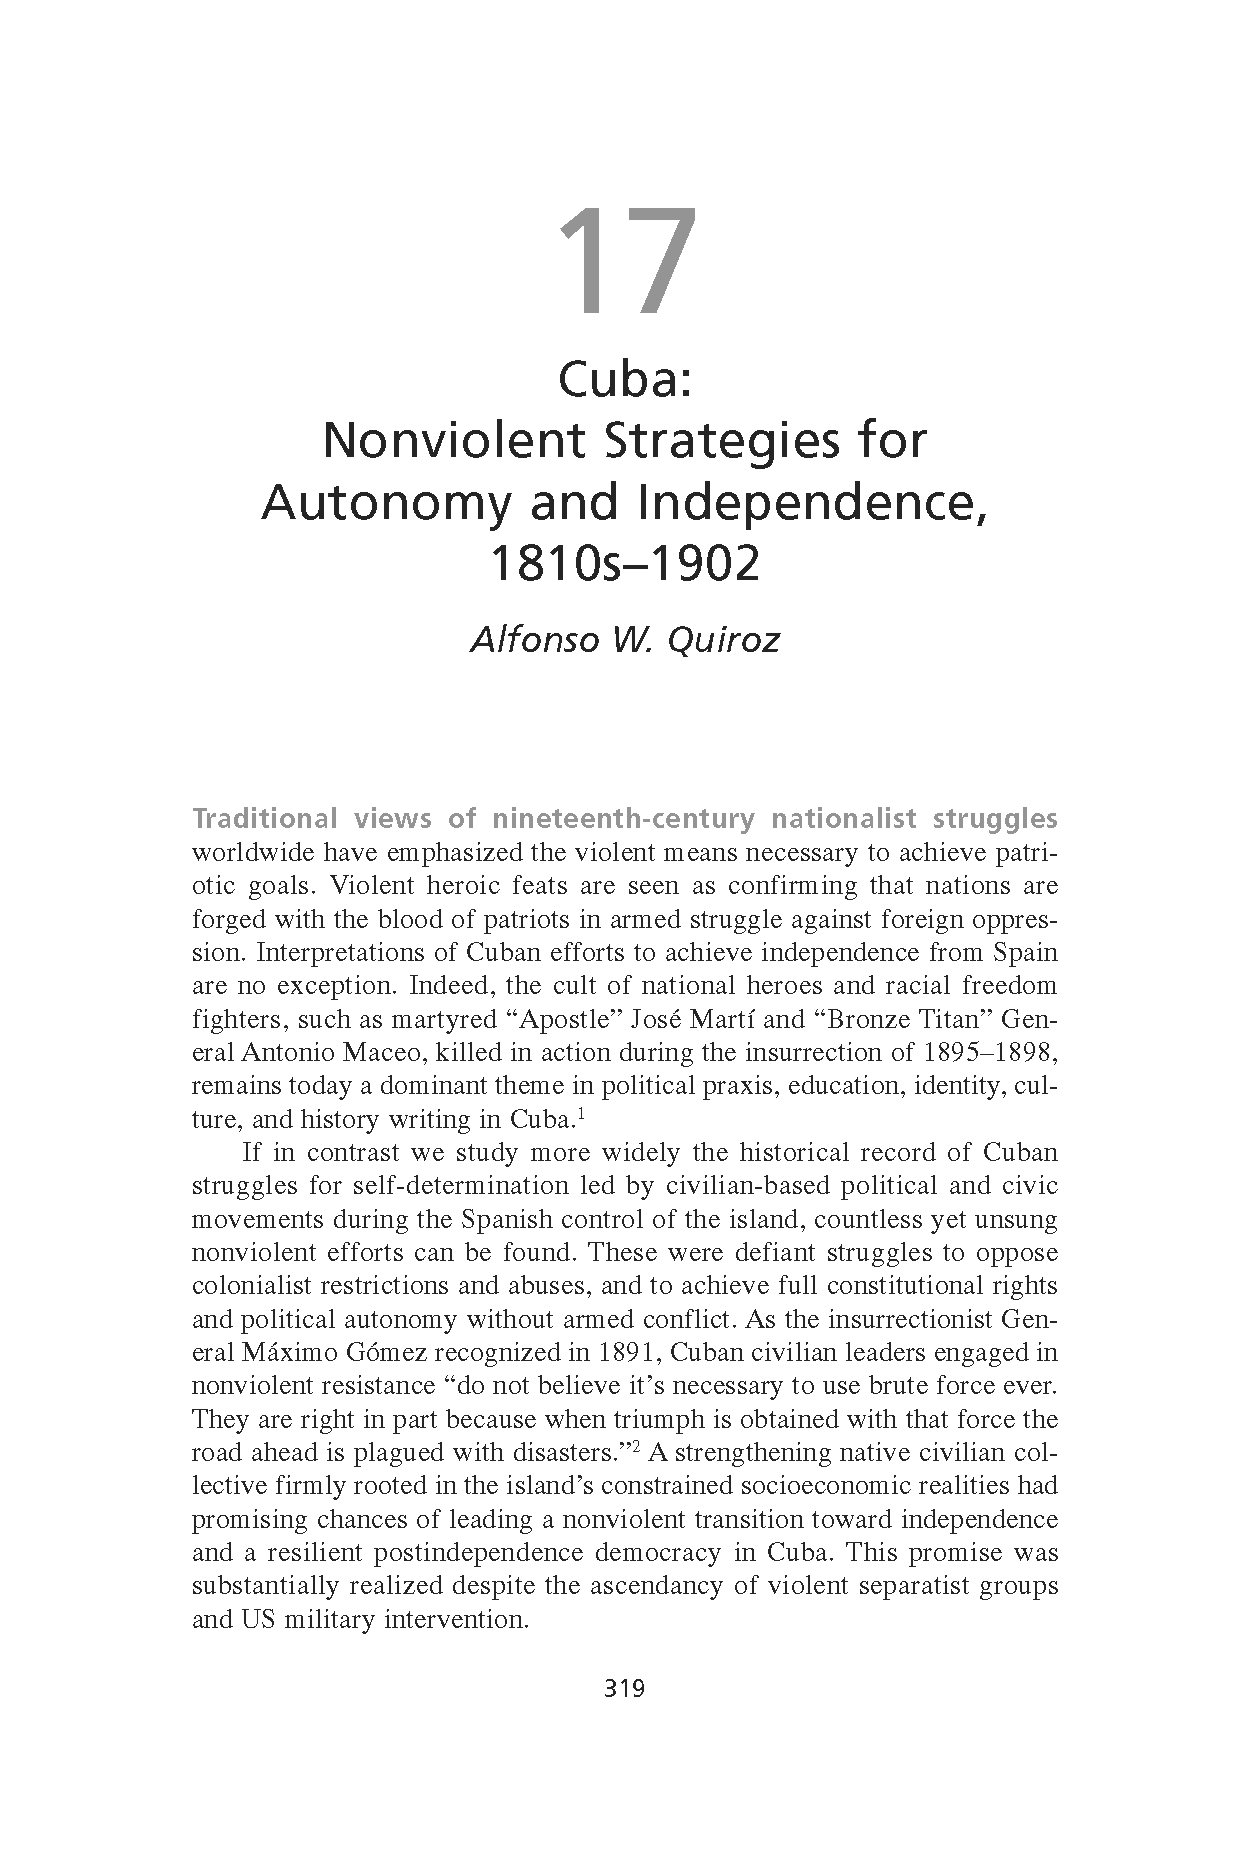 Cuba: Nonviolent Strategies for Autonomy and Independence, 1810s-1902 (Chapter 17 from 'Recovering Nonviolent History')